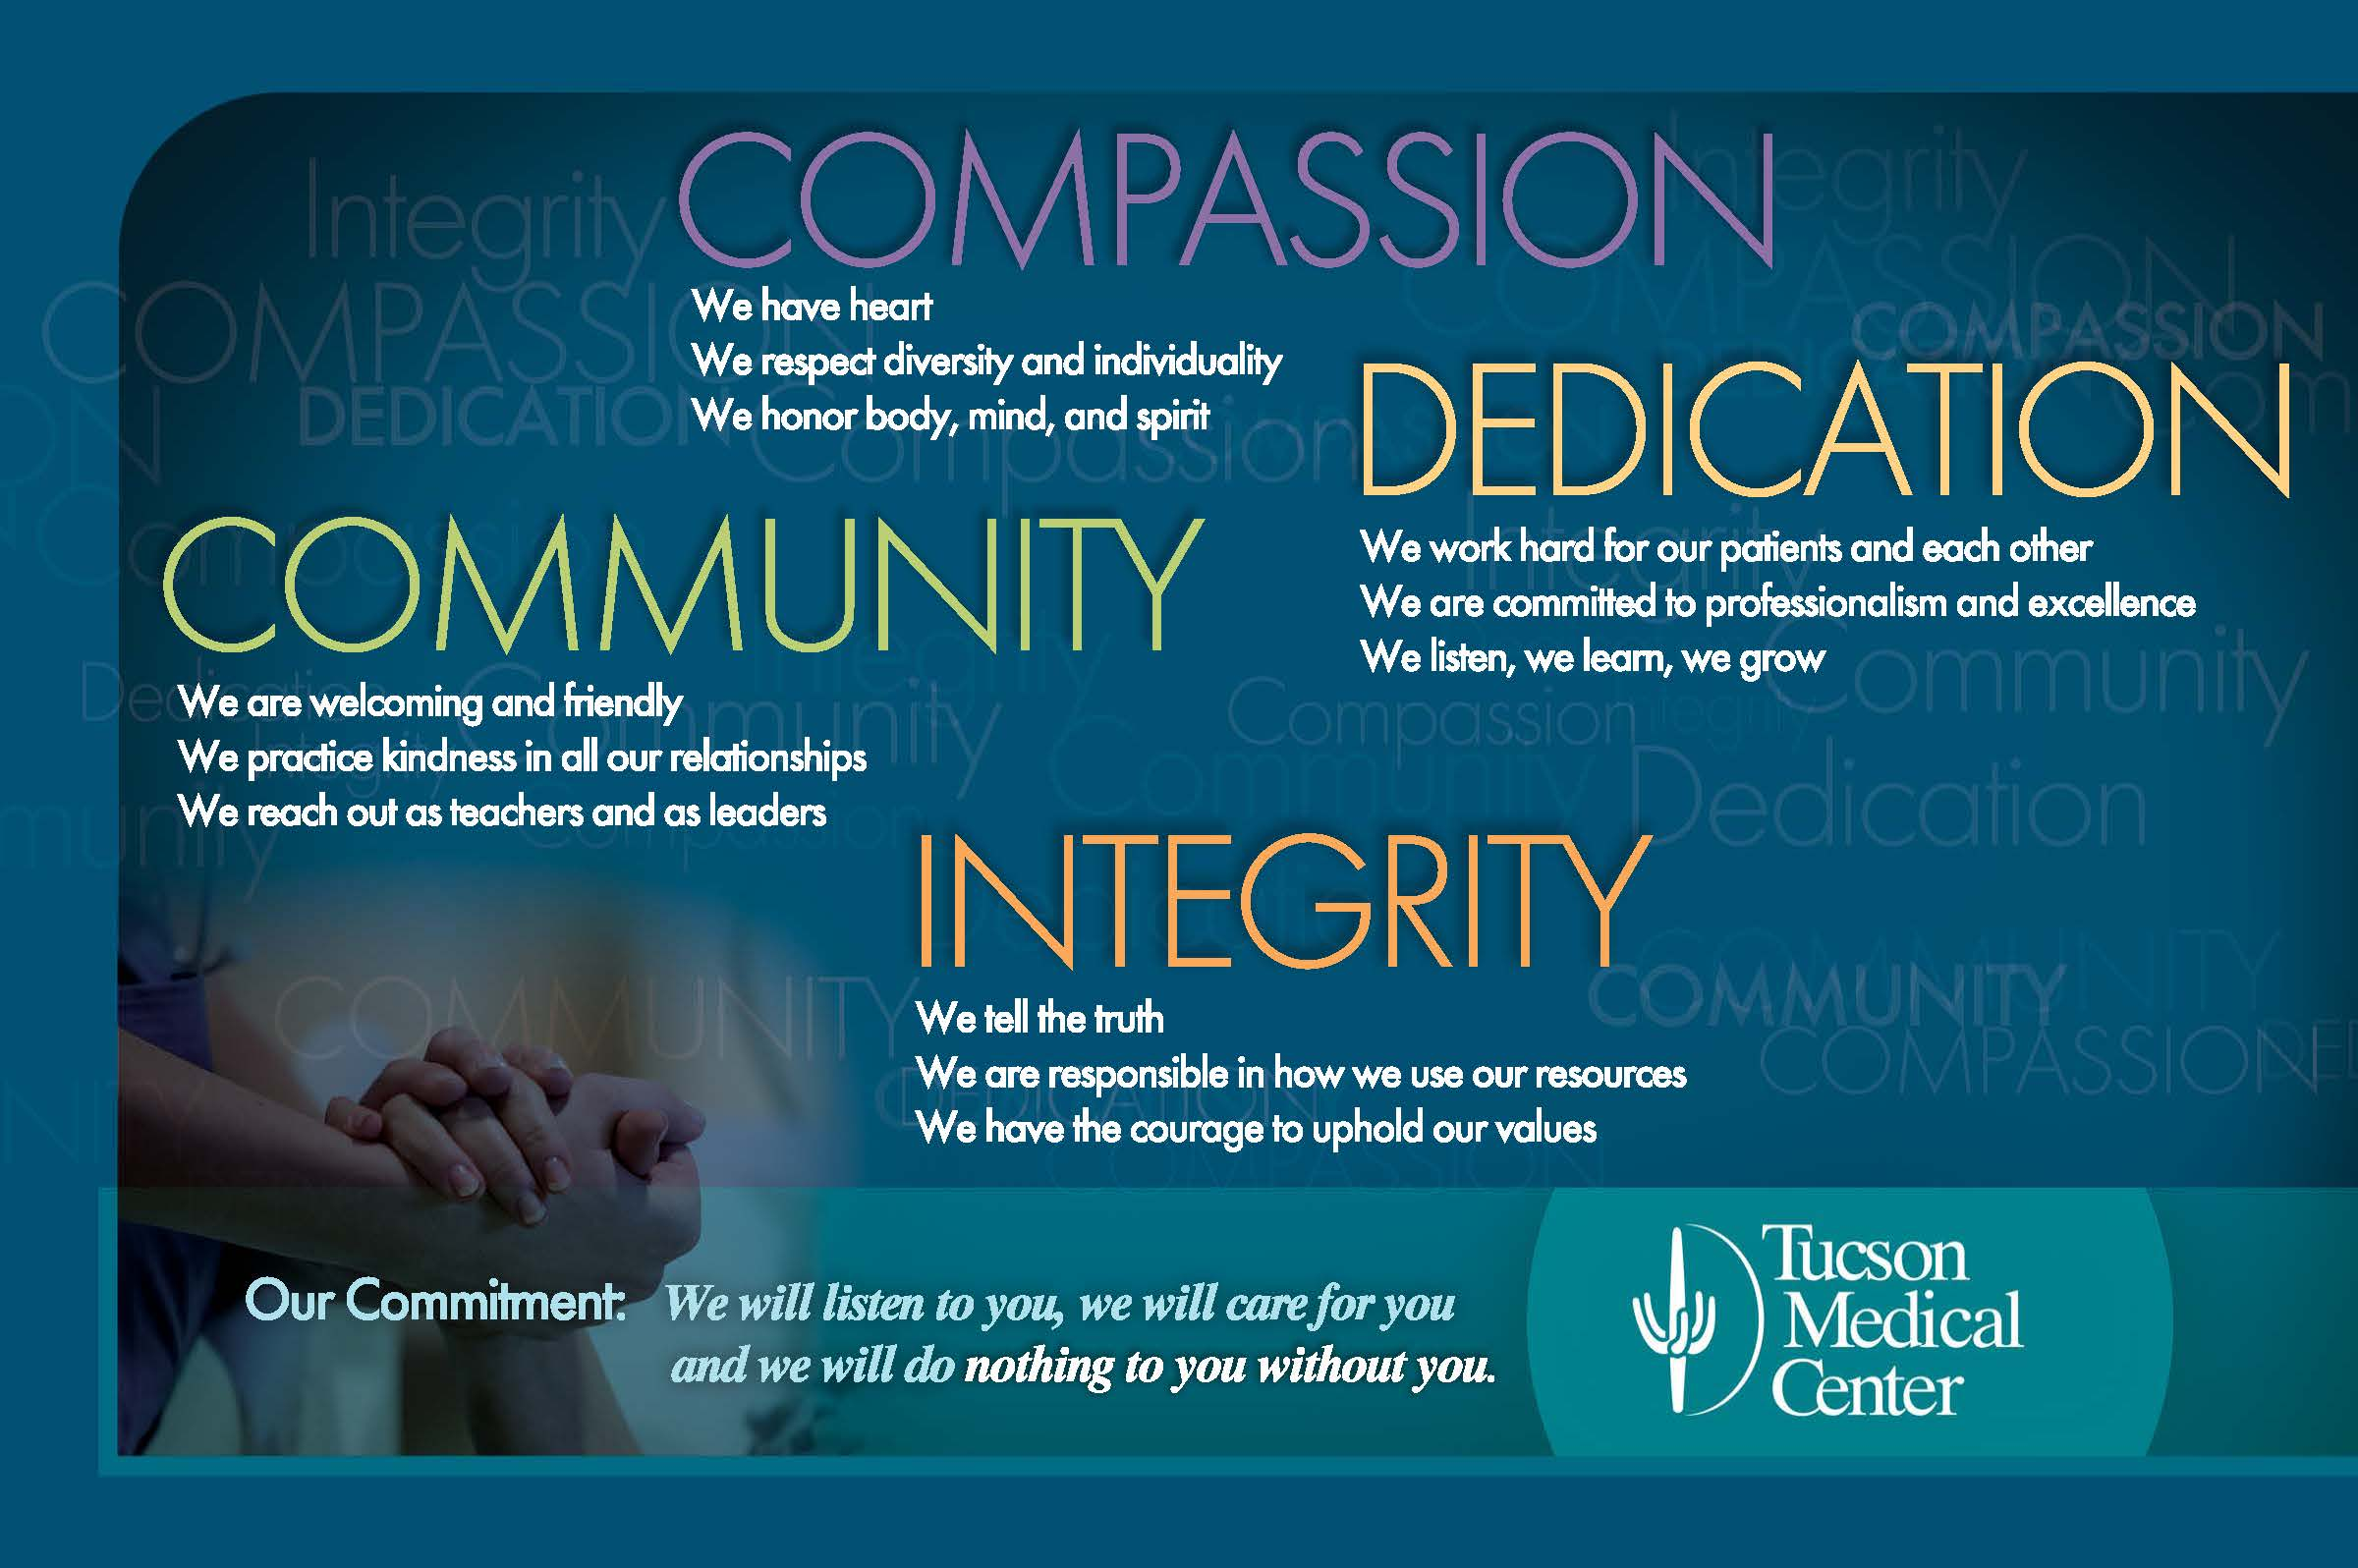 Mayo Clinic Mission And Vision Statement - Pictures